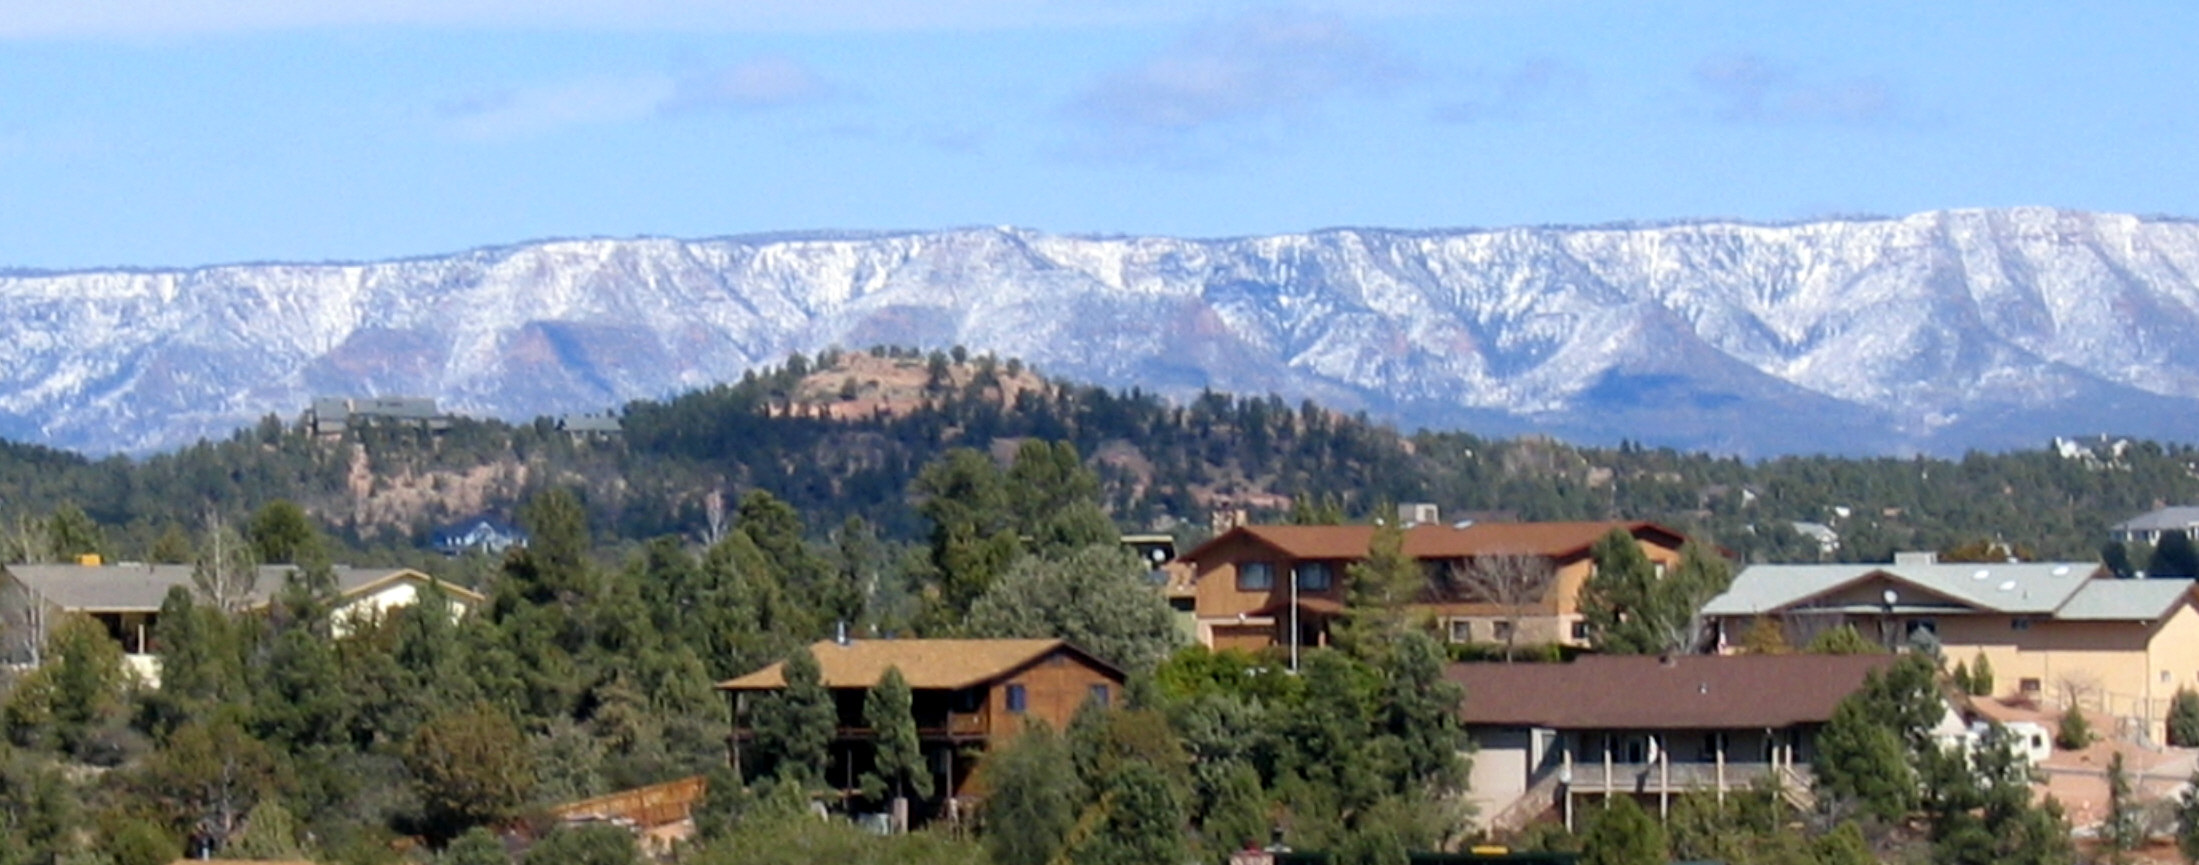 View of Payson